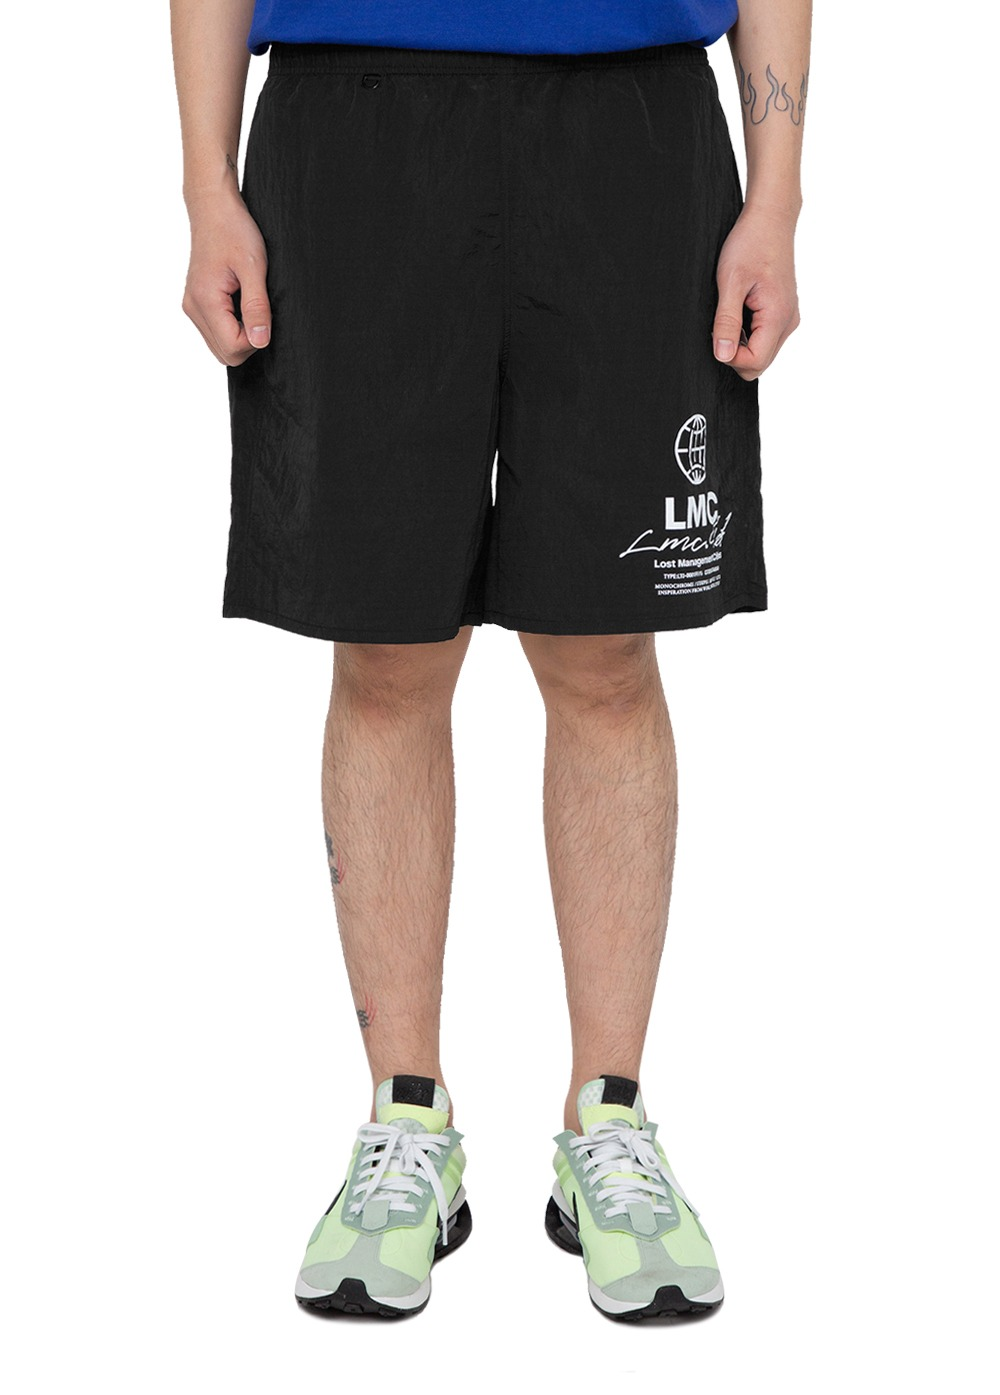 LMC TED GLOSSY WATER SHORTS black